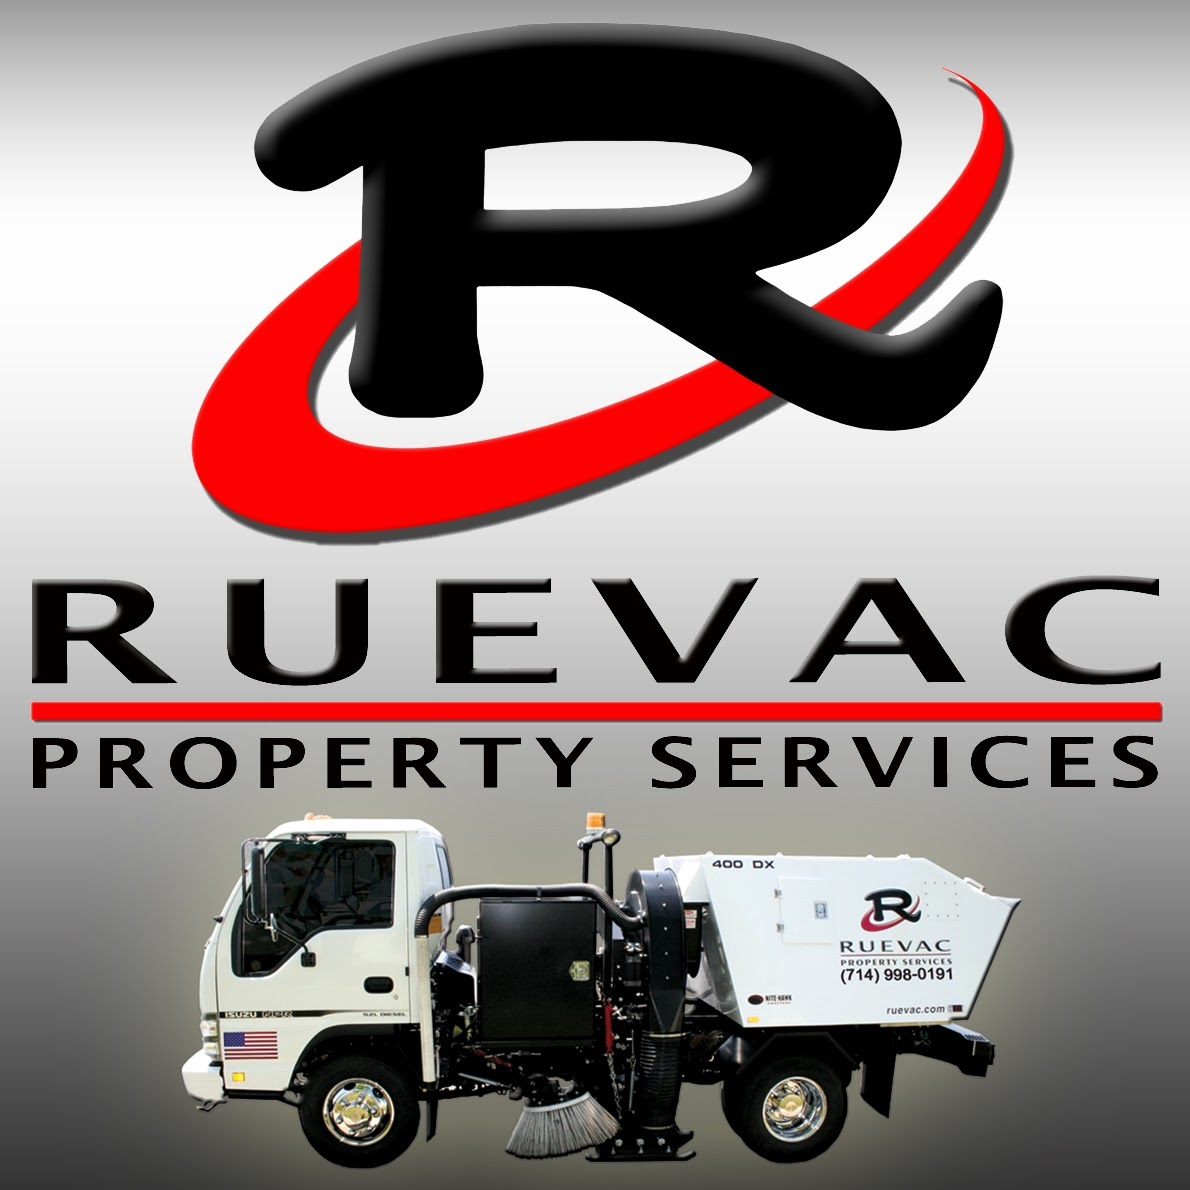 RueVac Property Services